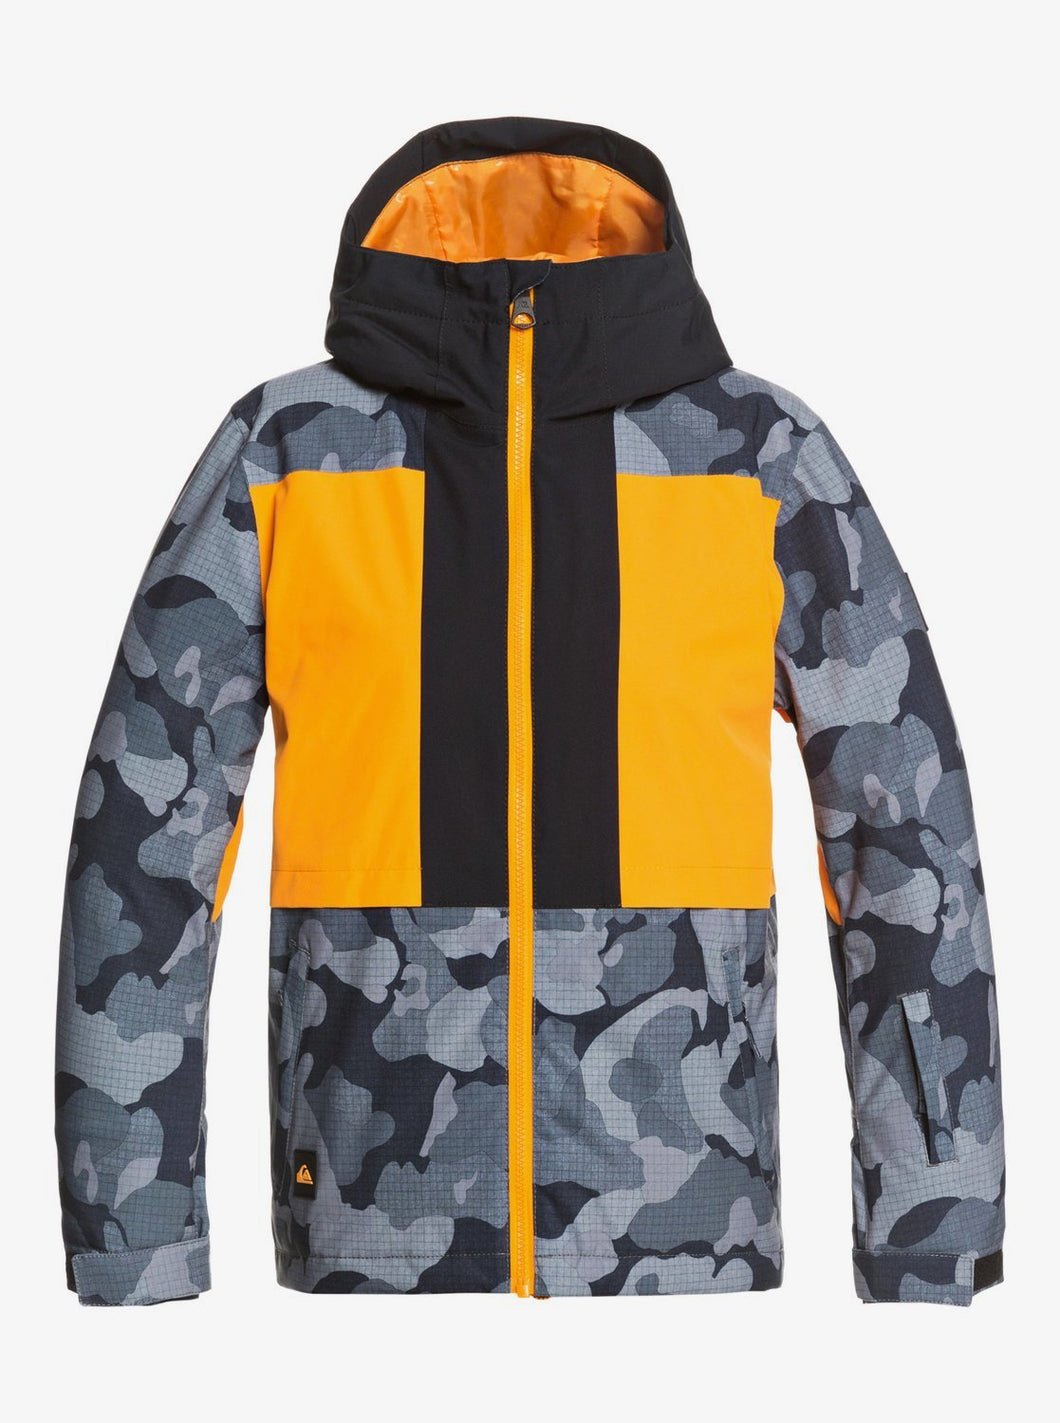 Quicksilver Boy's Groomer Snow Jacket Orange and Grey Front View